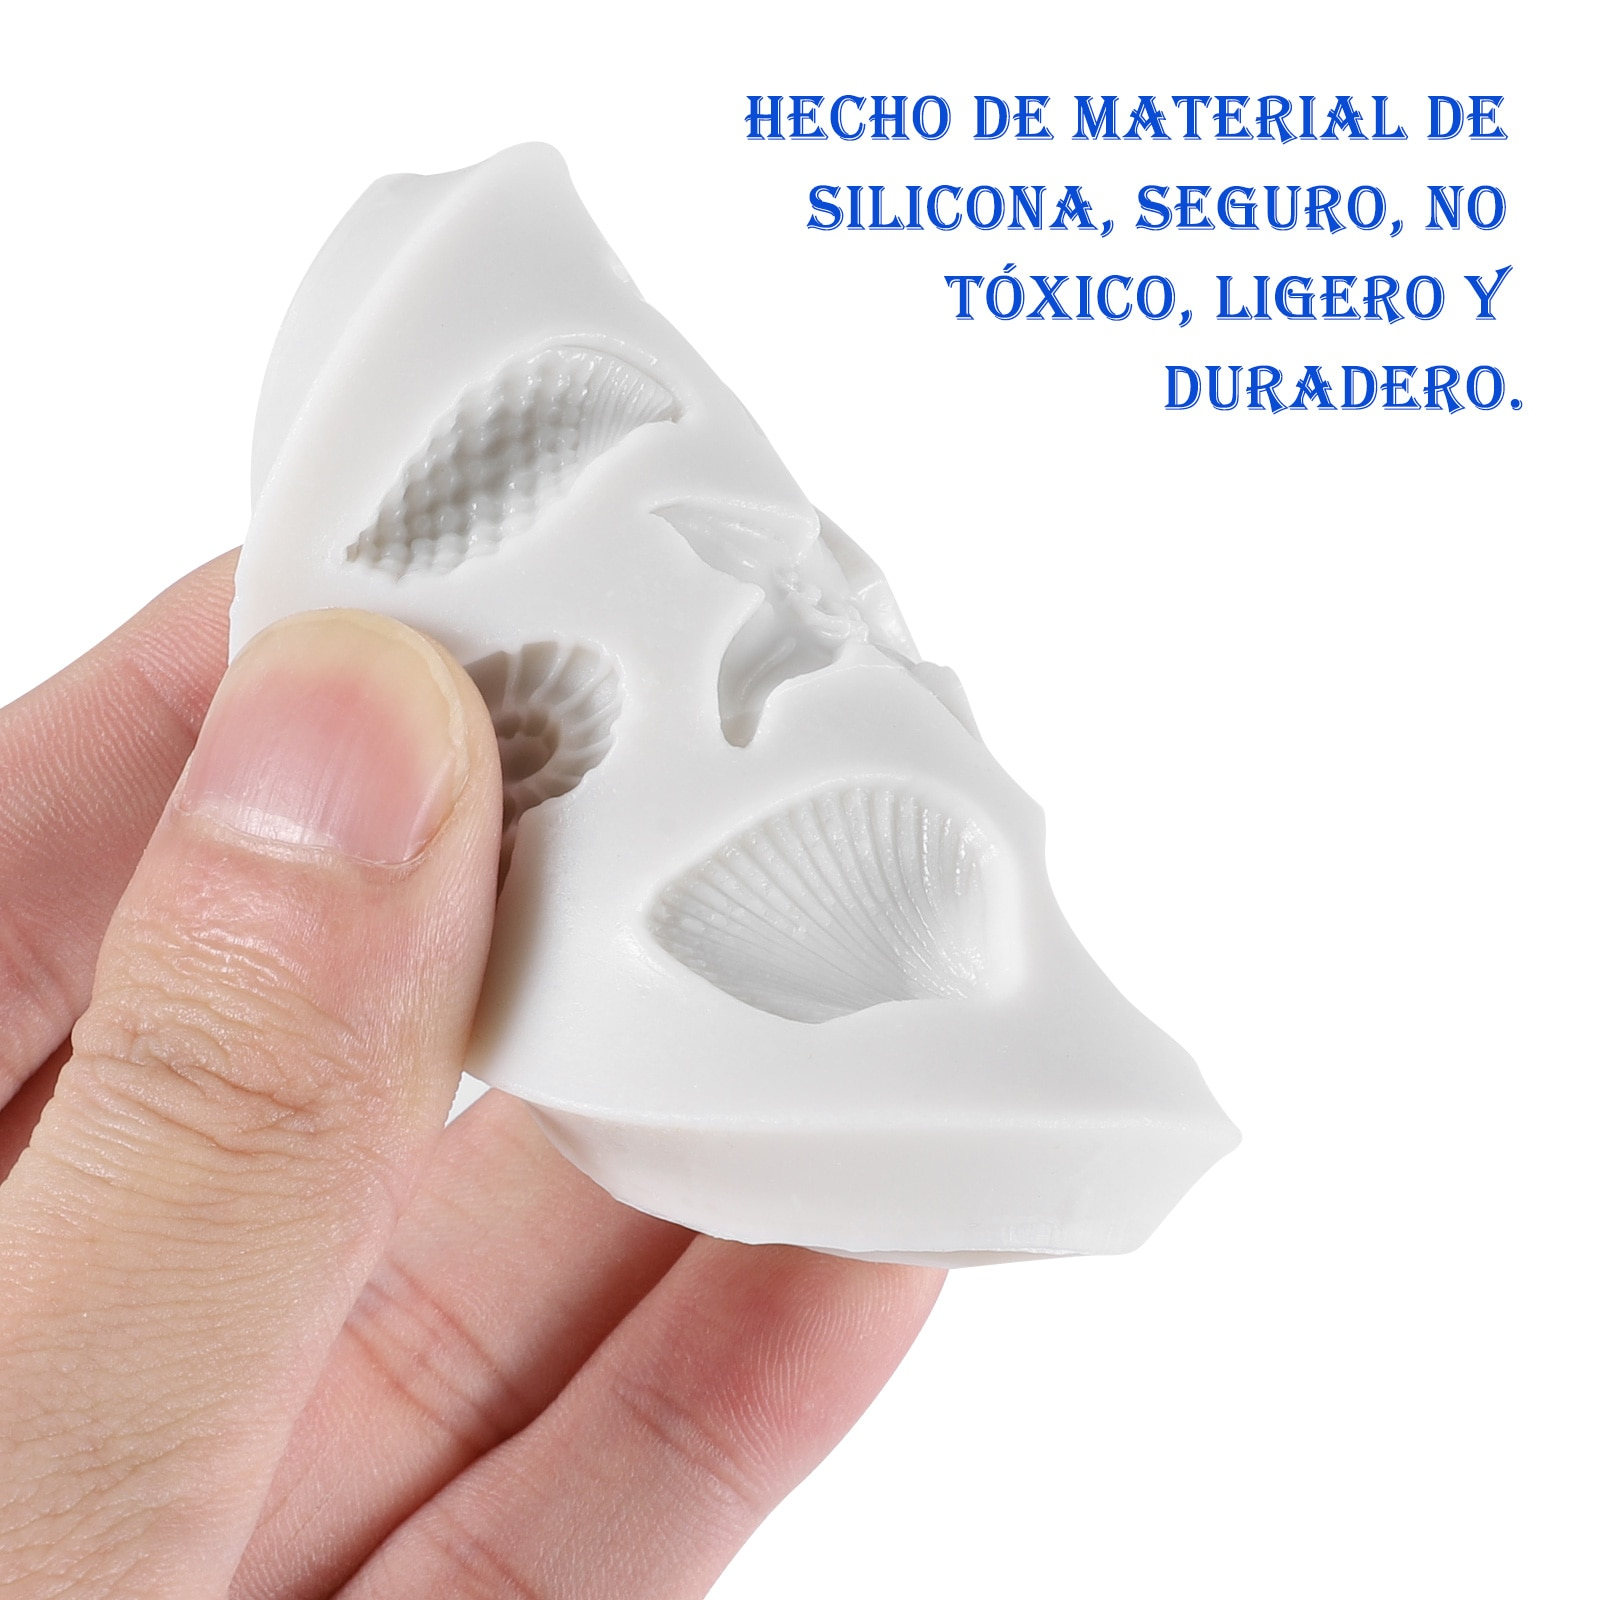 3D Seashell Ice Mold Starfish Ice Trays Conch Shaped Ice Moulds Fondant Mold for Kitchen Baking Pastry Candy Making Tool Cake Molds  3